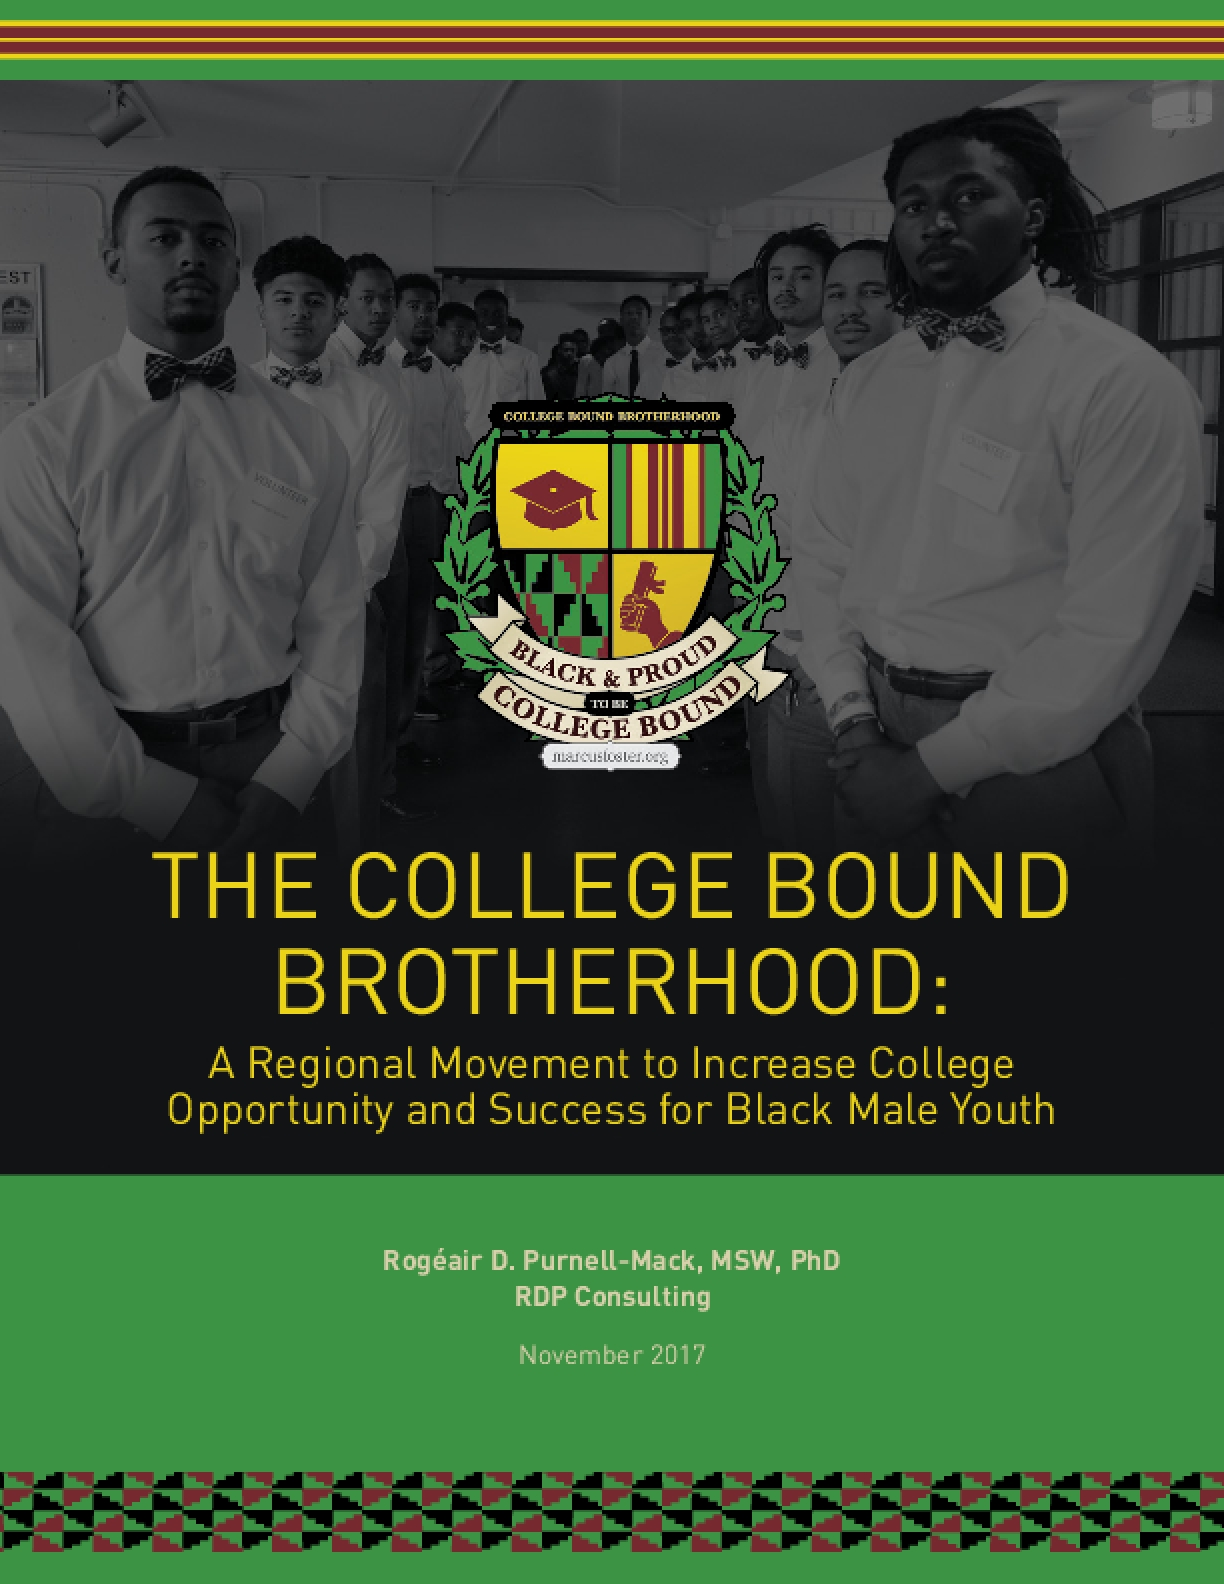 College Bound Brotherhood: A Regional Movement to Increase College Opportunity and Success for Black Male Youth